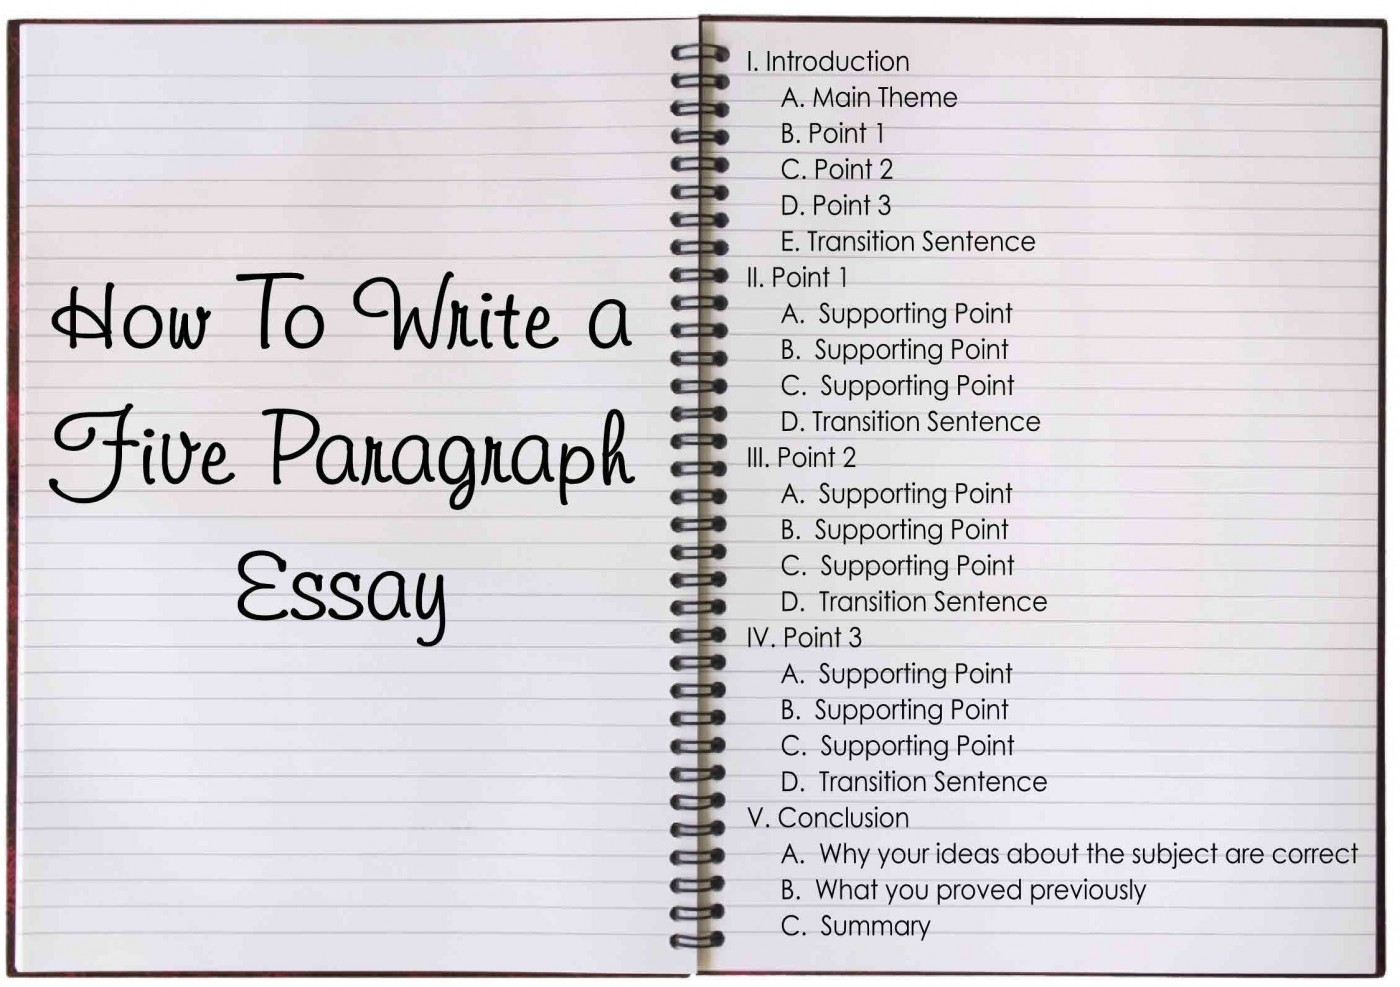 023 Paragraph Essay Topics Example Best 5 For High School Middle 1400